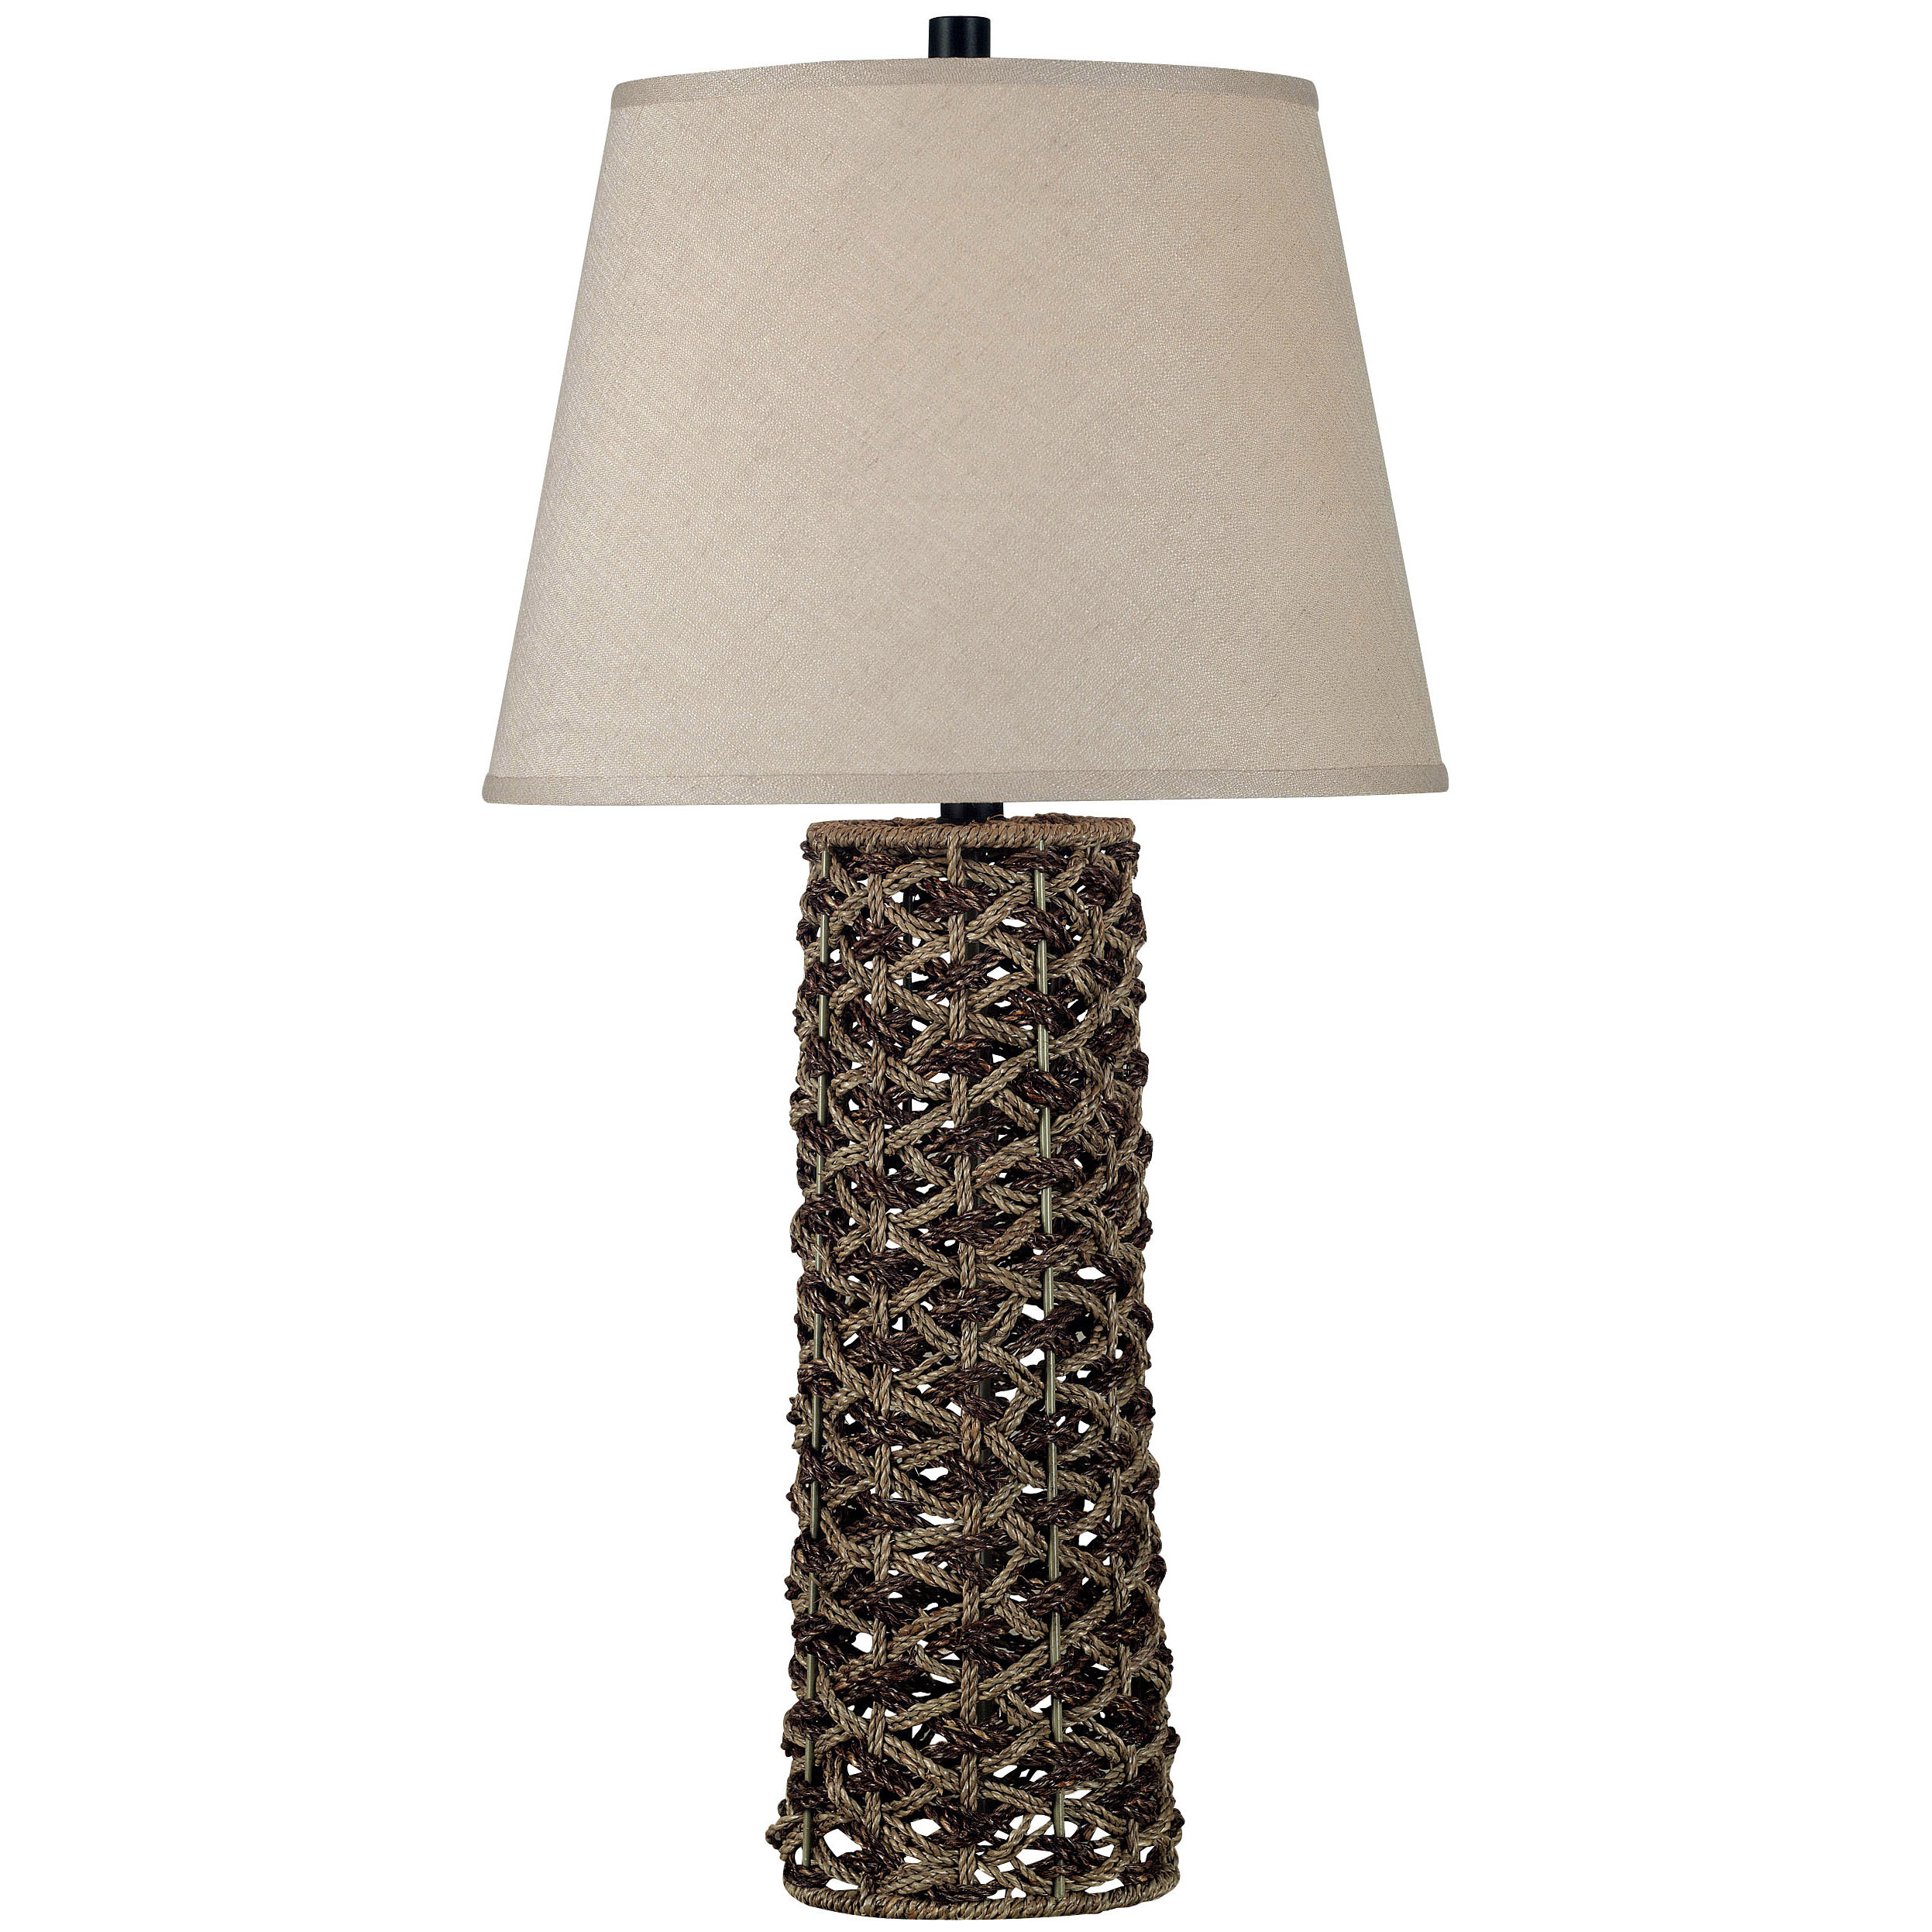 "Kenroy Home Jakarta Table Lamp shines with singular beauty! Made by interweaving natural materials over a wire frame, the Jakarta Table Lamp brings distinctive style to your decor. The body is a combination of light and dark rope, complemented beautifully by a taupe 15"" diam. linen shade. Lamp stands 30""h. overall. Uses one 150W bulb. UL Listed. Some simple assembly required. - $129.99"